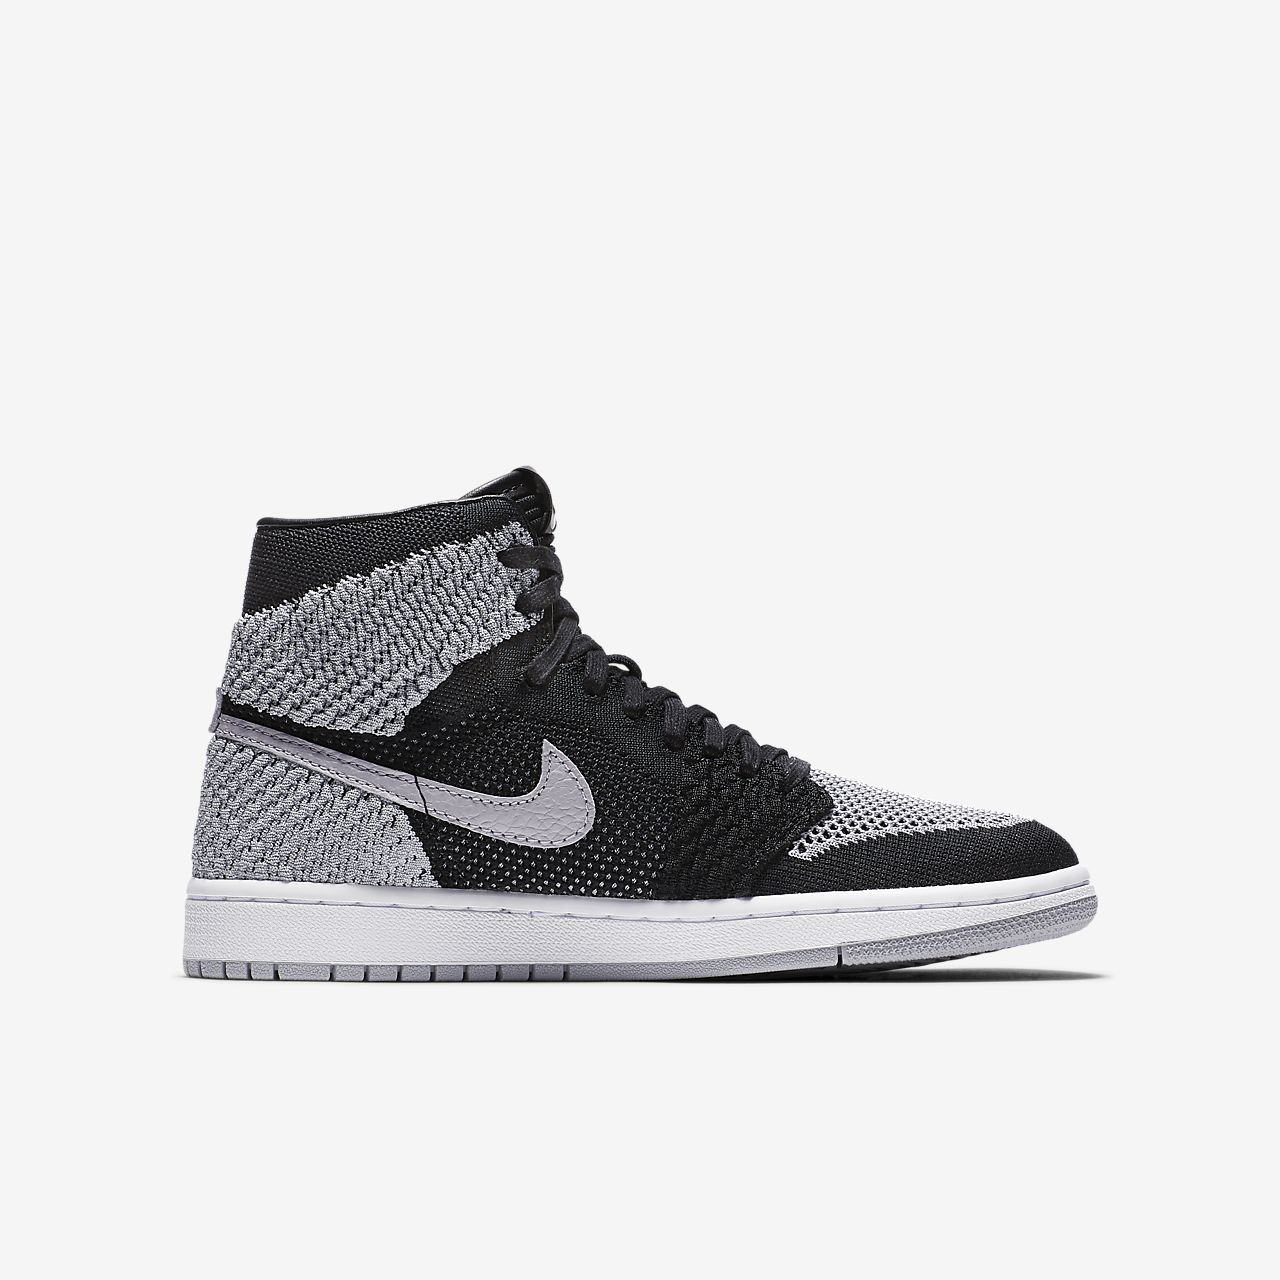 online store 9c416 2d8f4 Nike Herren Air Jordan 1 Retro Hi Flyknit Basketballschuhe -  rocket-league-community.de